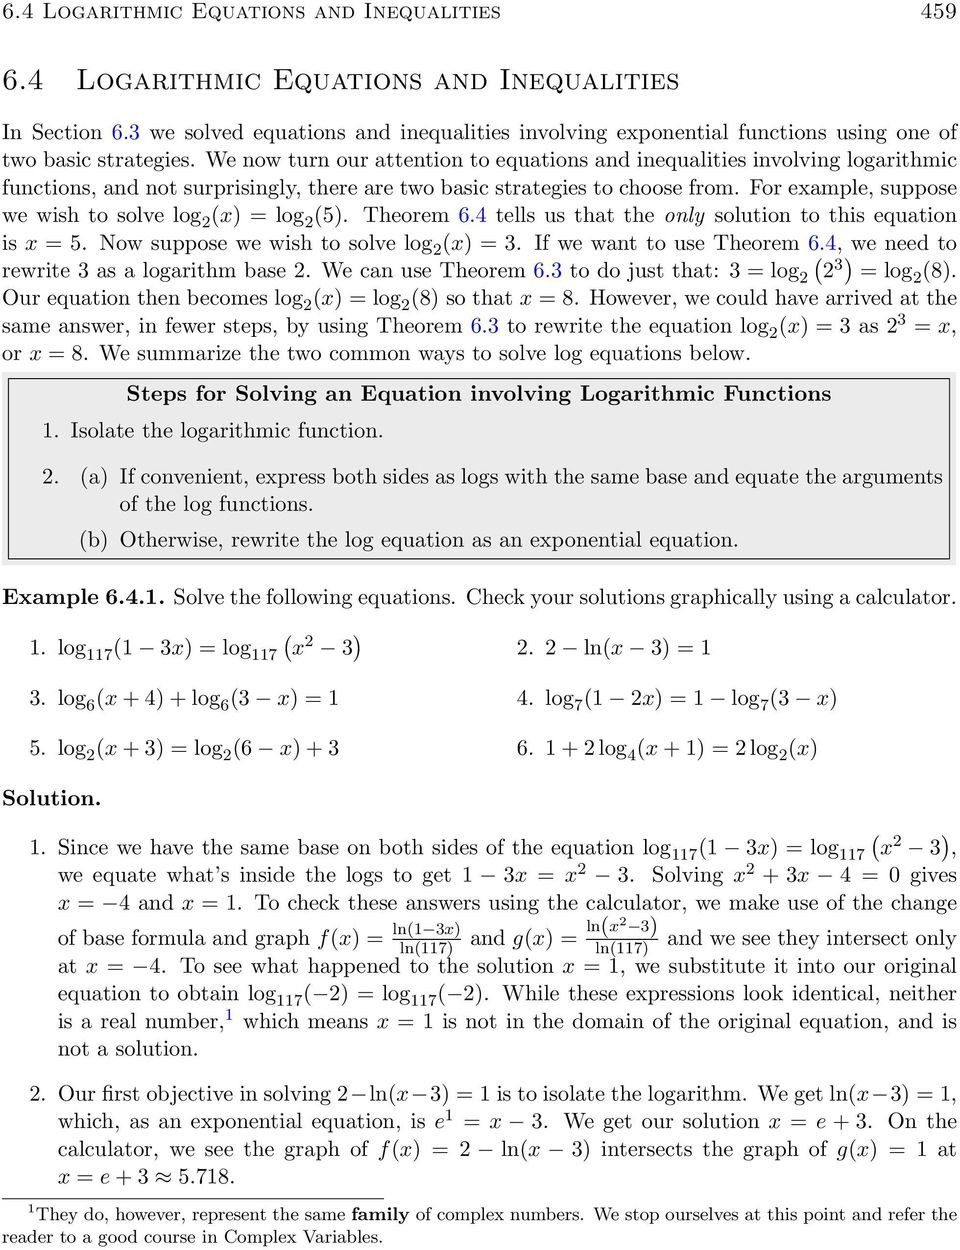 Solving Logarithmic Equations Worksheet 6 4 Logarithmic Equations and Inequalities Pdf Free Download